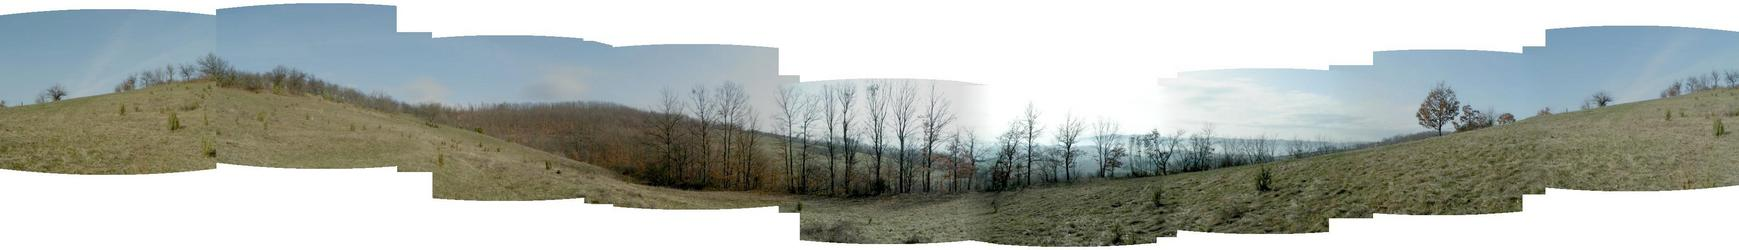 panoramic picture